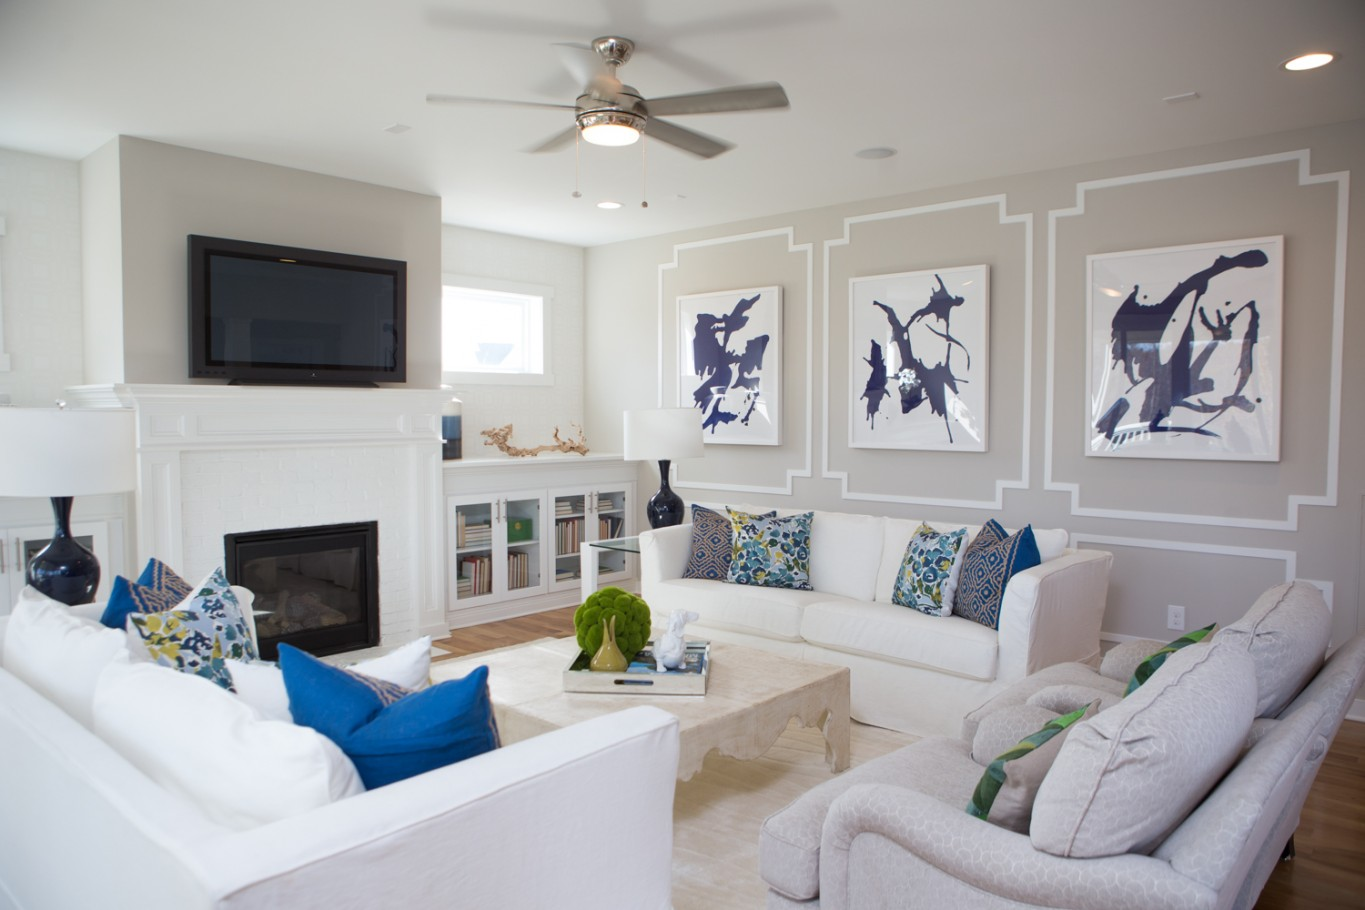 Model home interiors clearance center visit model home interiors clearance center for big - Model homes interiors ...